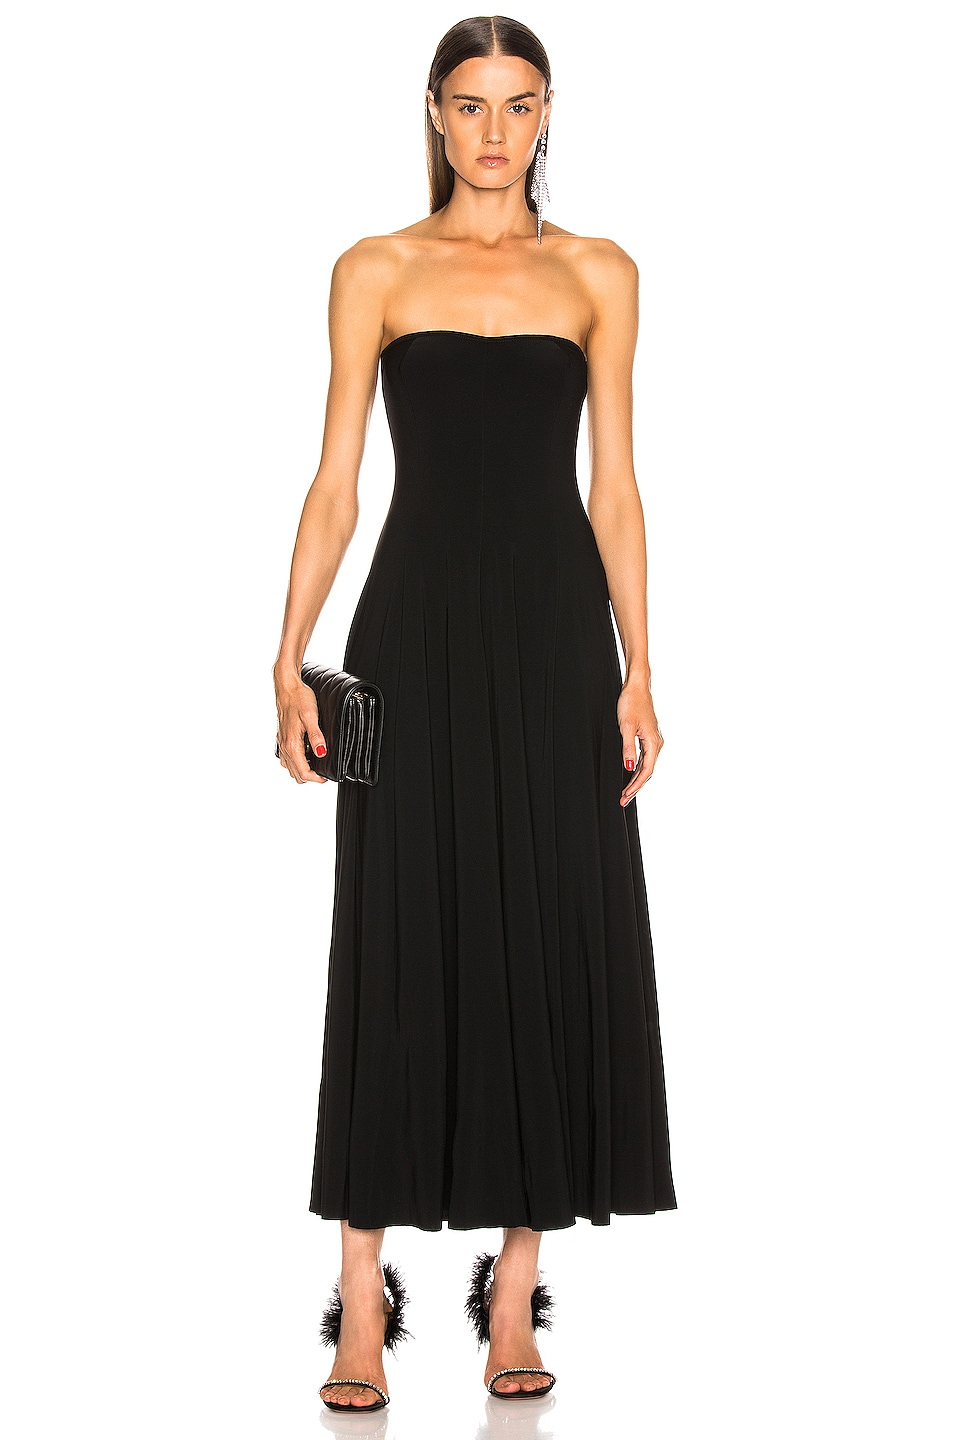 Image 1 of Norma Kamali Strapless Flared Midcalf Dress in Black